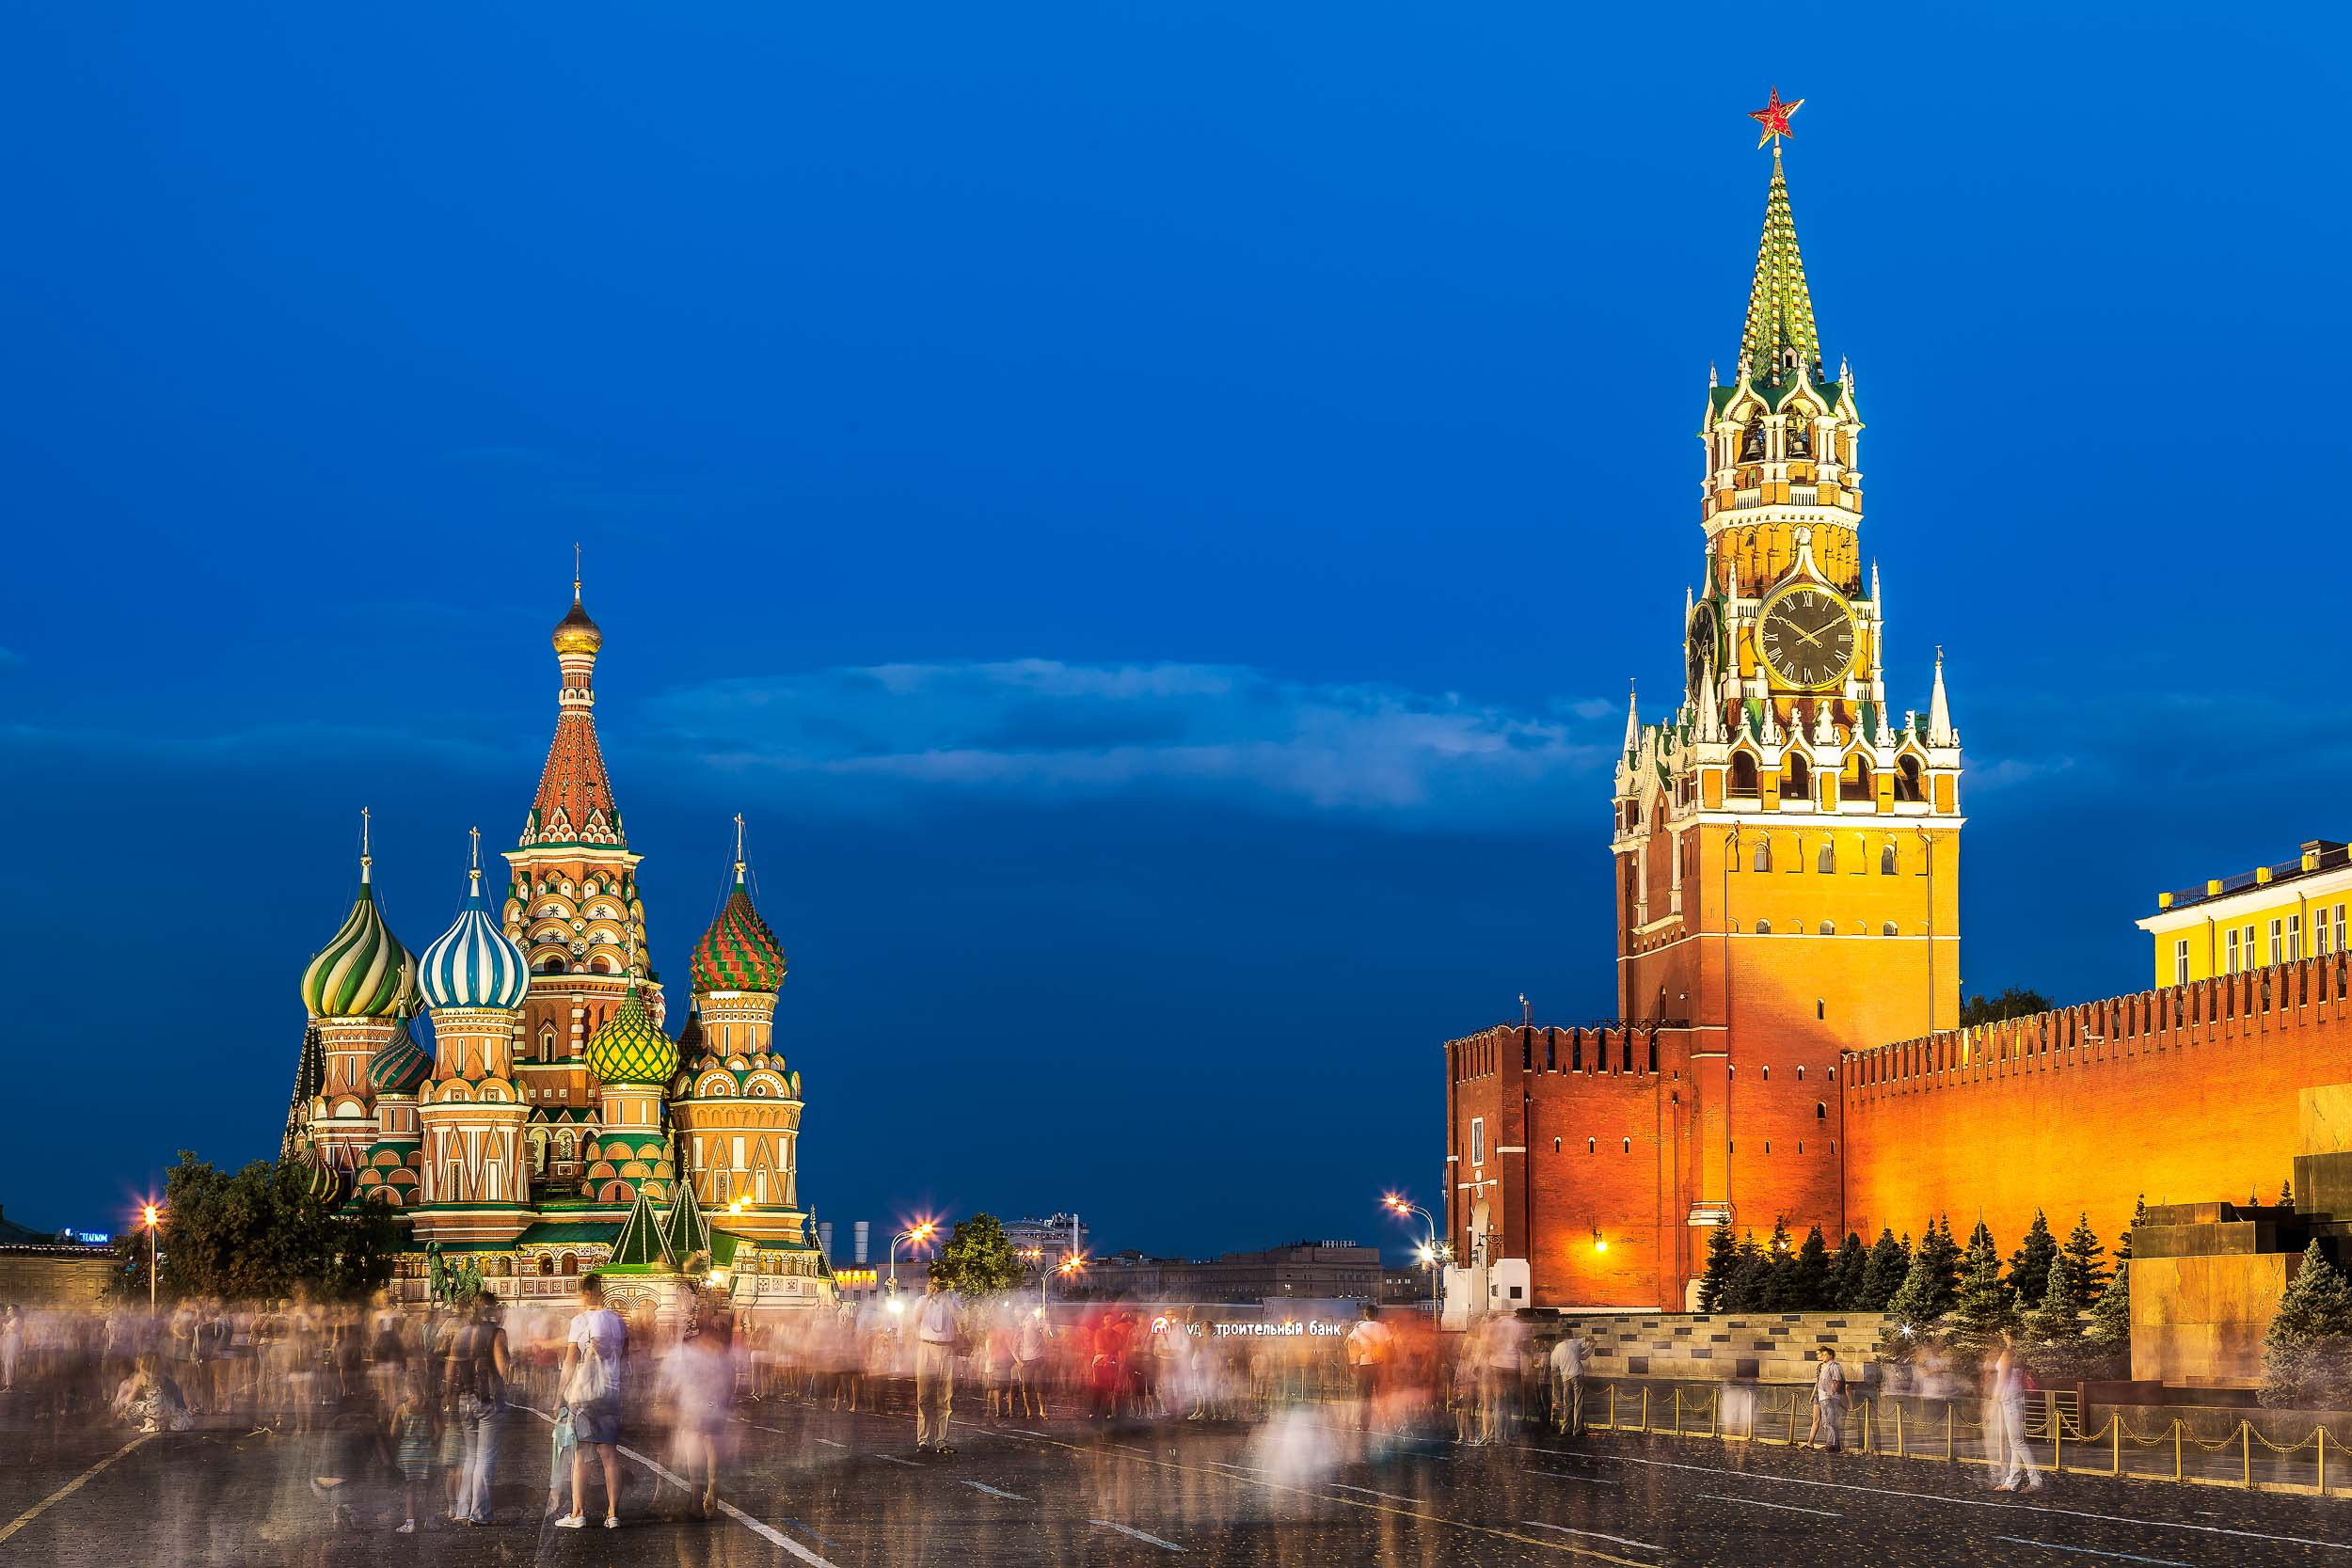 The    crowd moves silently    through the spectacular    Red Square    in    Moscow   , Russia on a balmy summer evening flanked by the magnificence of    St. Basil's Cathedral    and the    Kremlin   .